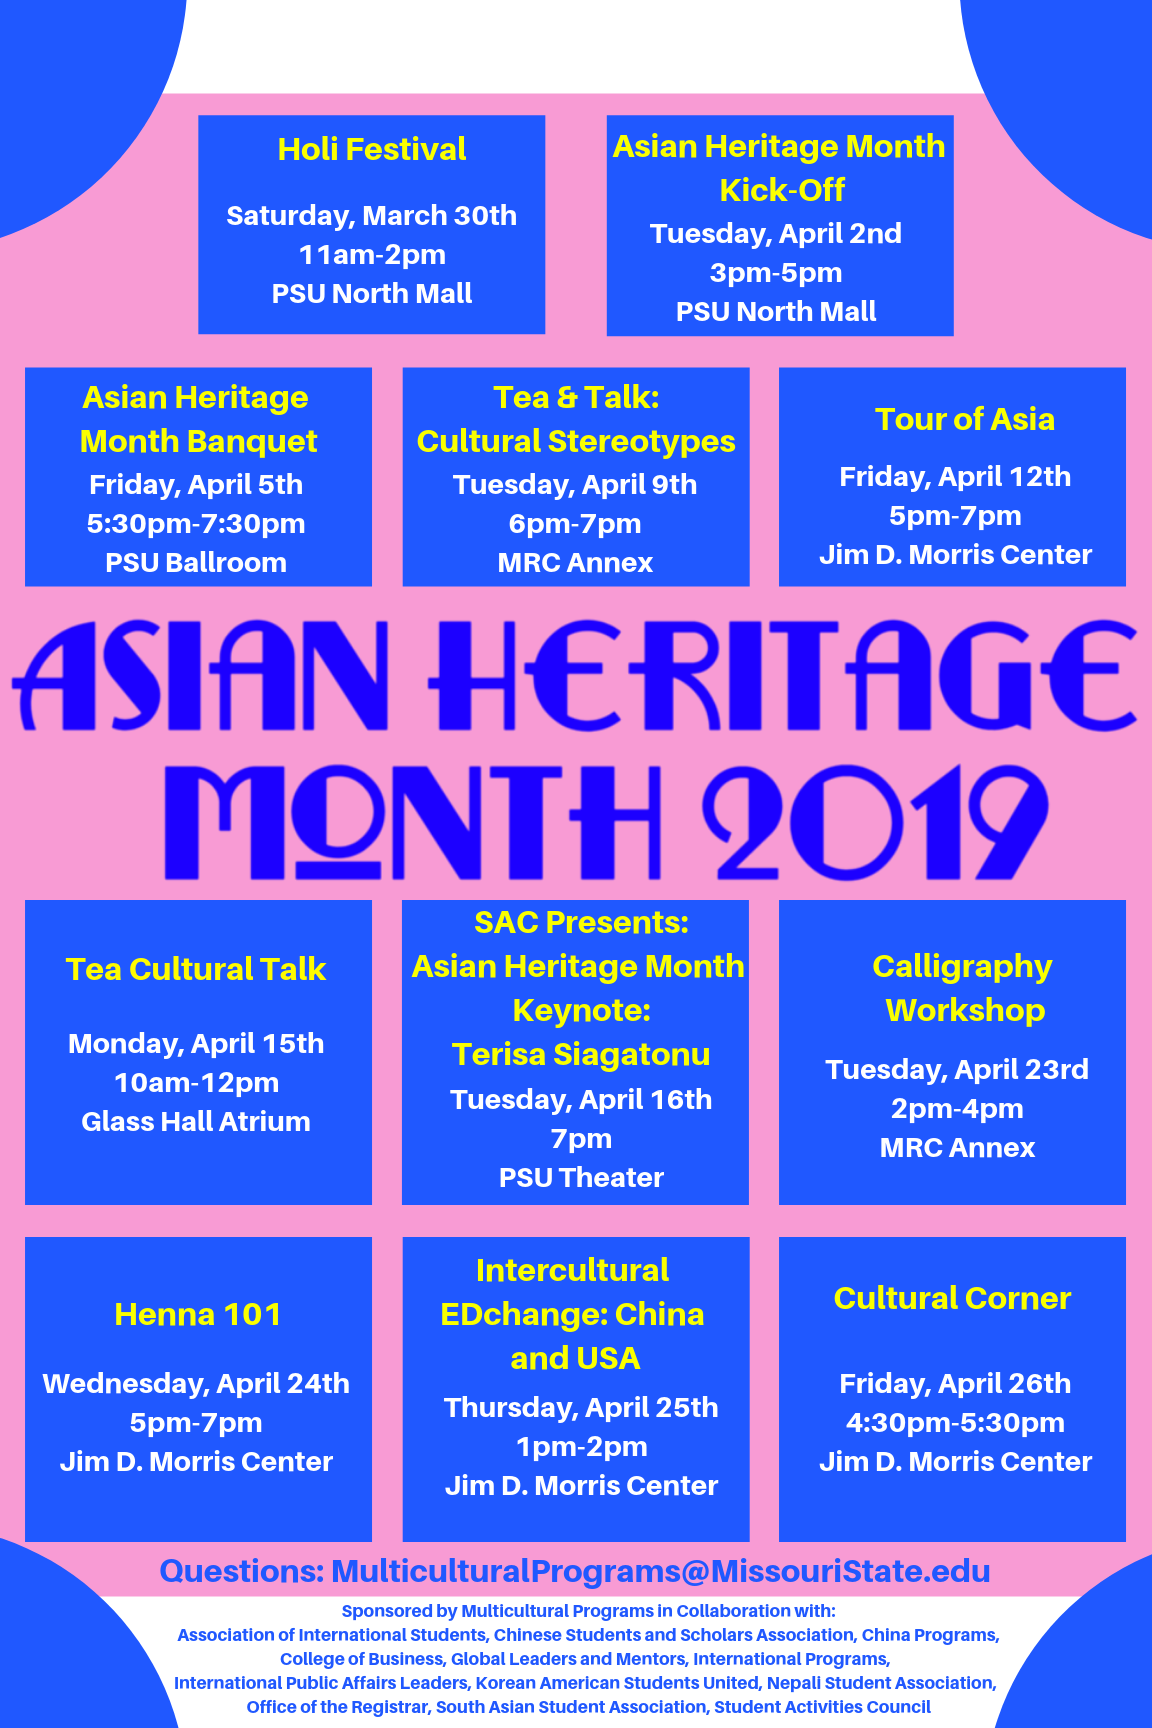 Asian Heritage Month 2019